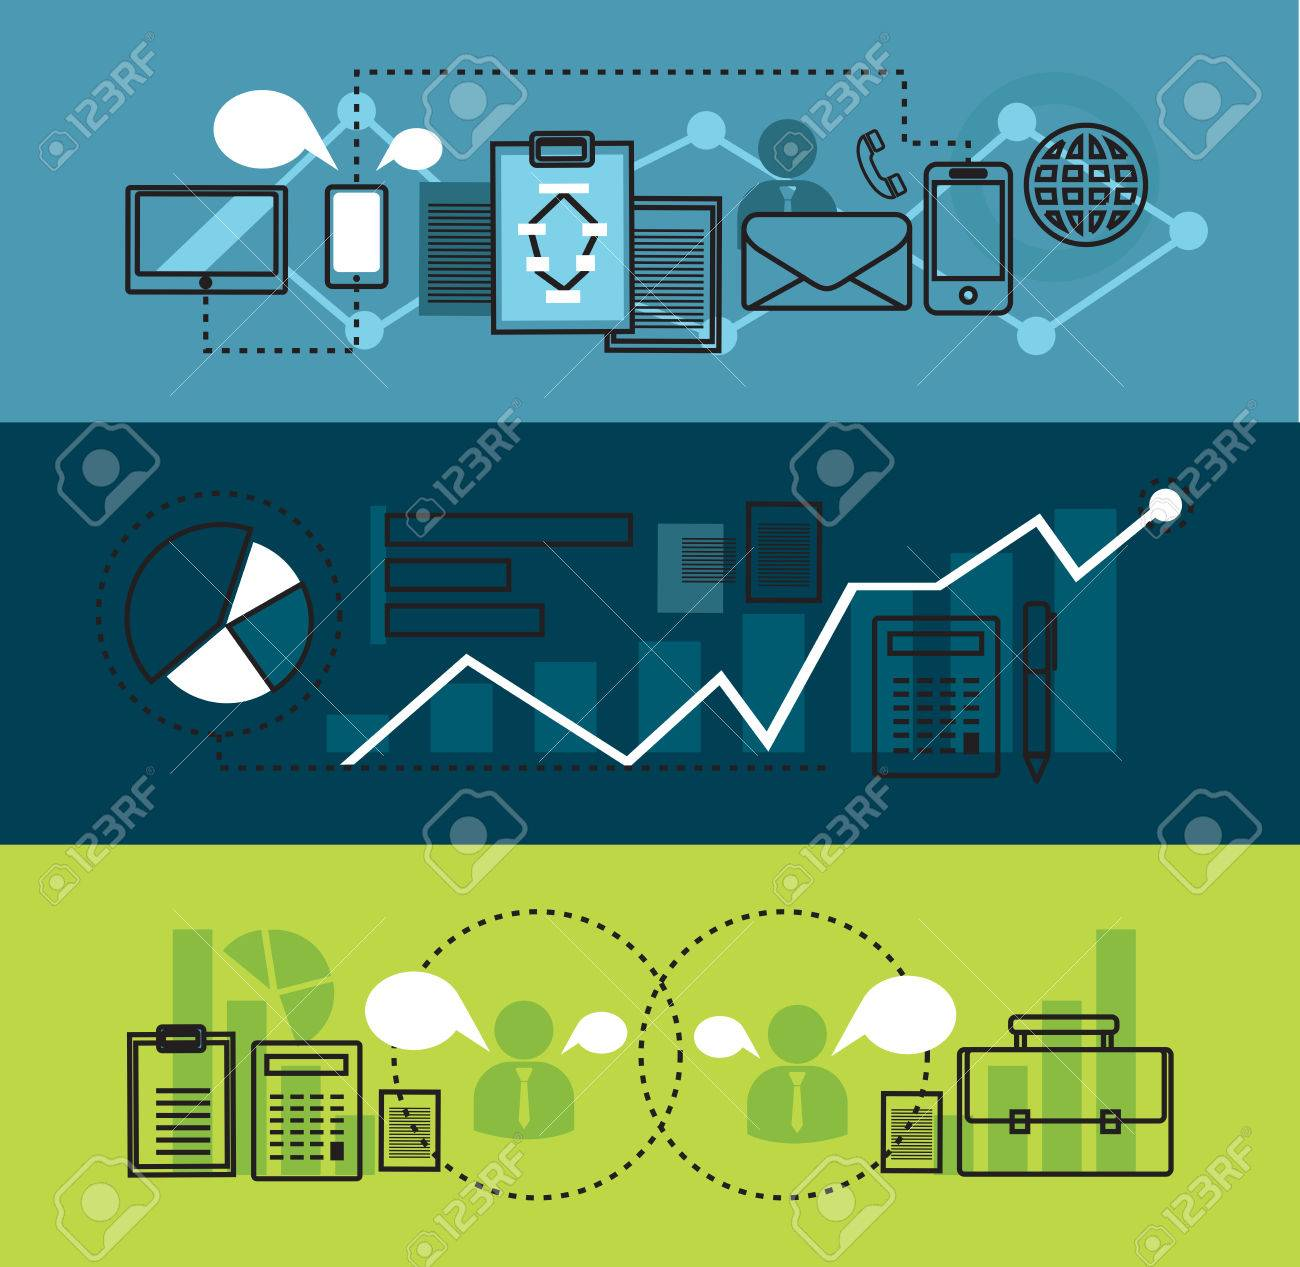 modern network marketing business and office tool flat line design